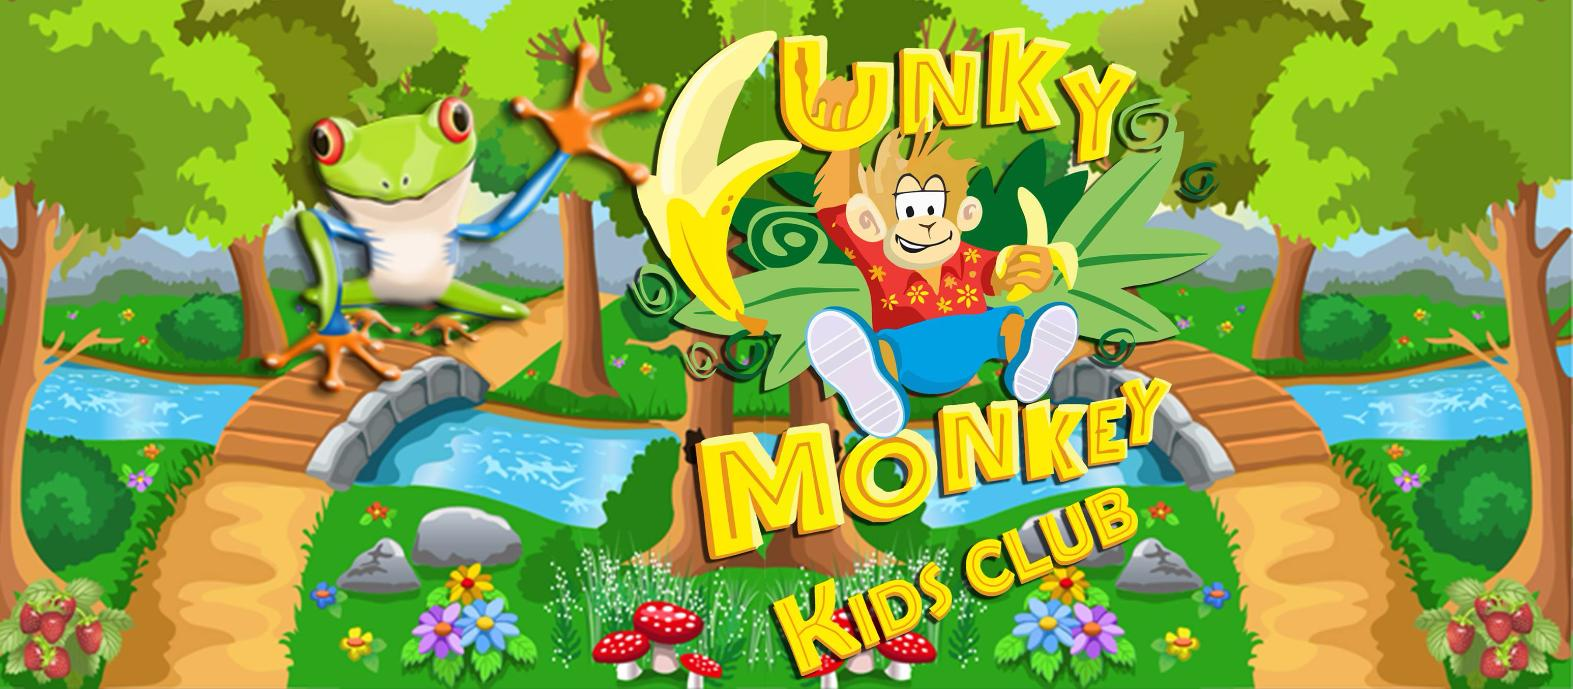 Funky Monkey Kids Club